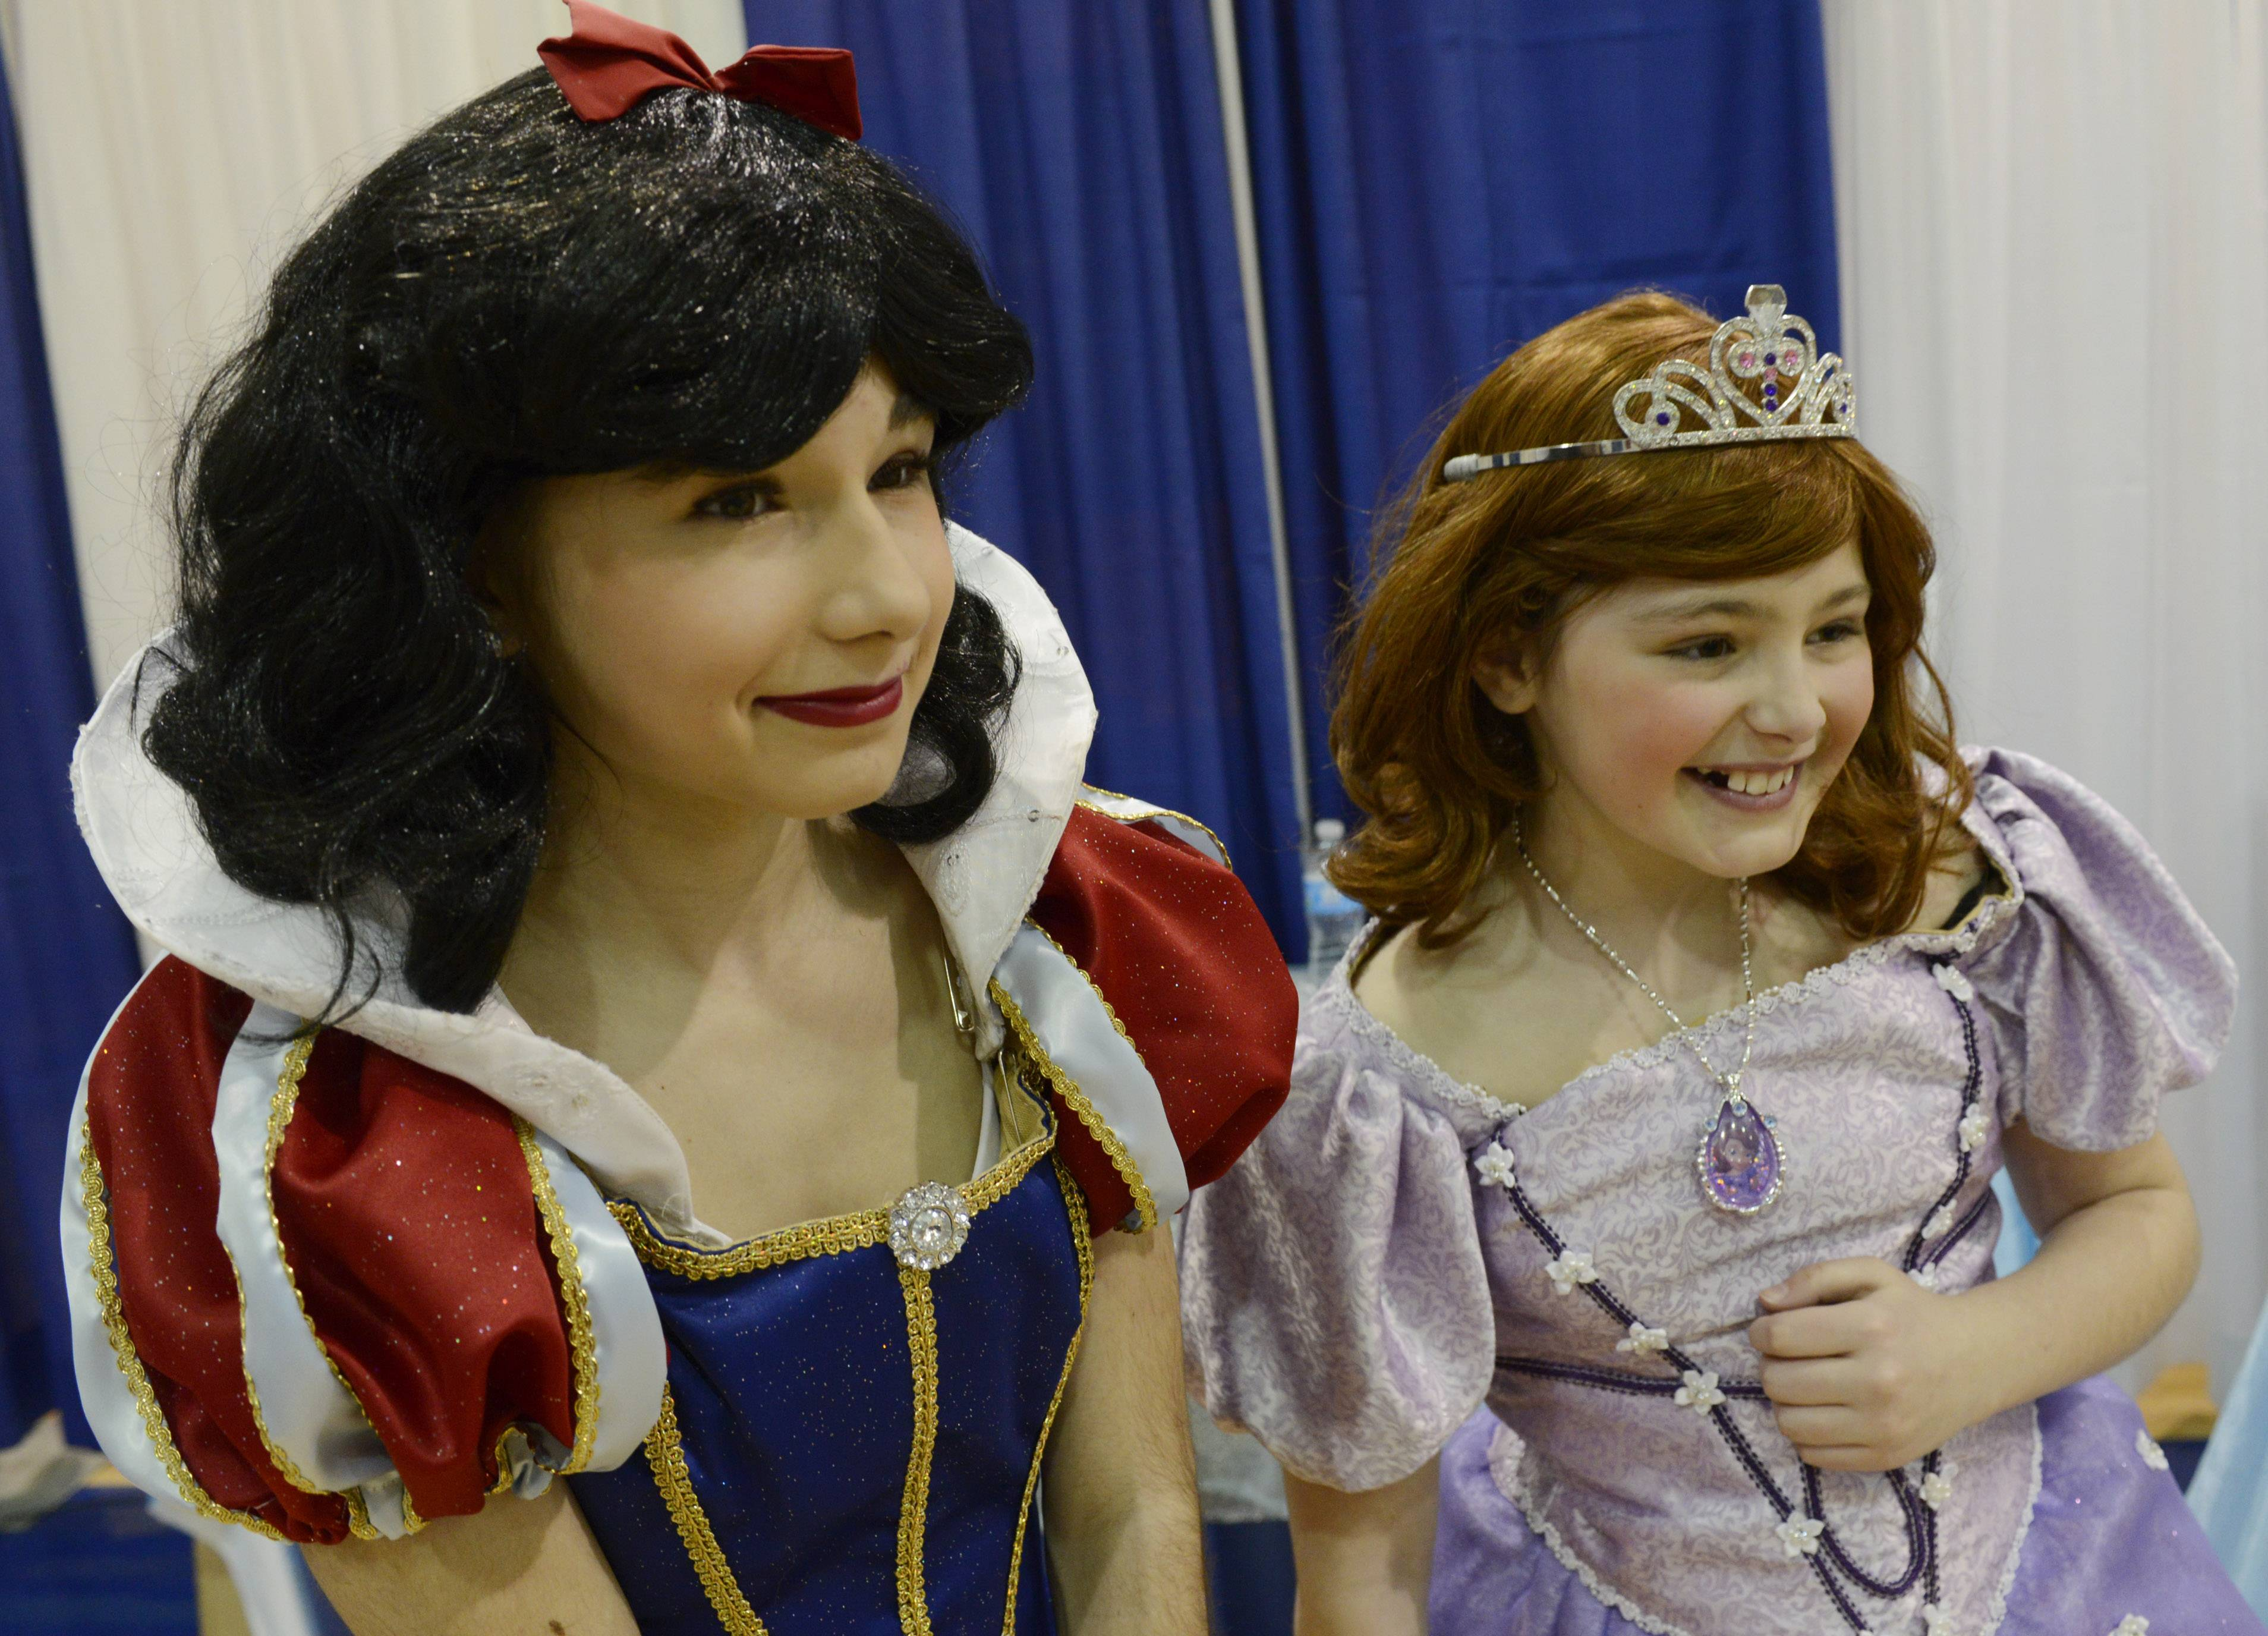 Lyndsey Bassett, 14, left, of Hainesville is dressed as Snow White and her sister Lily, 10, is dressed as Princess Sofia as they great visitors to the Round Lake Area Park District booth Saturday during the Springfest Expo 2014, held by the Lindenhurst-Lake Villa Chamber of Commerce at Lakes Community High School.